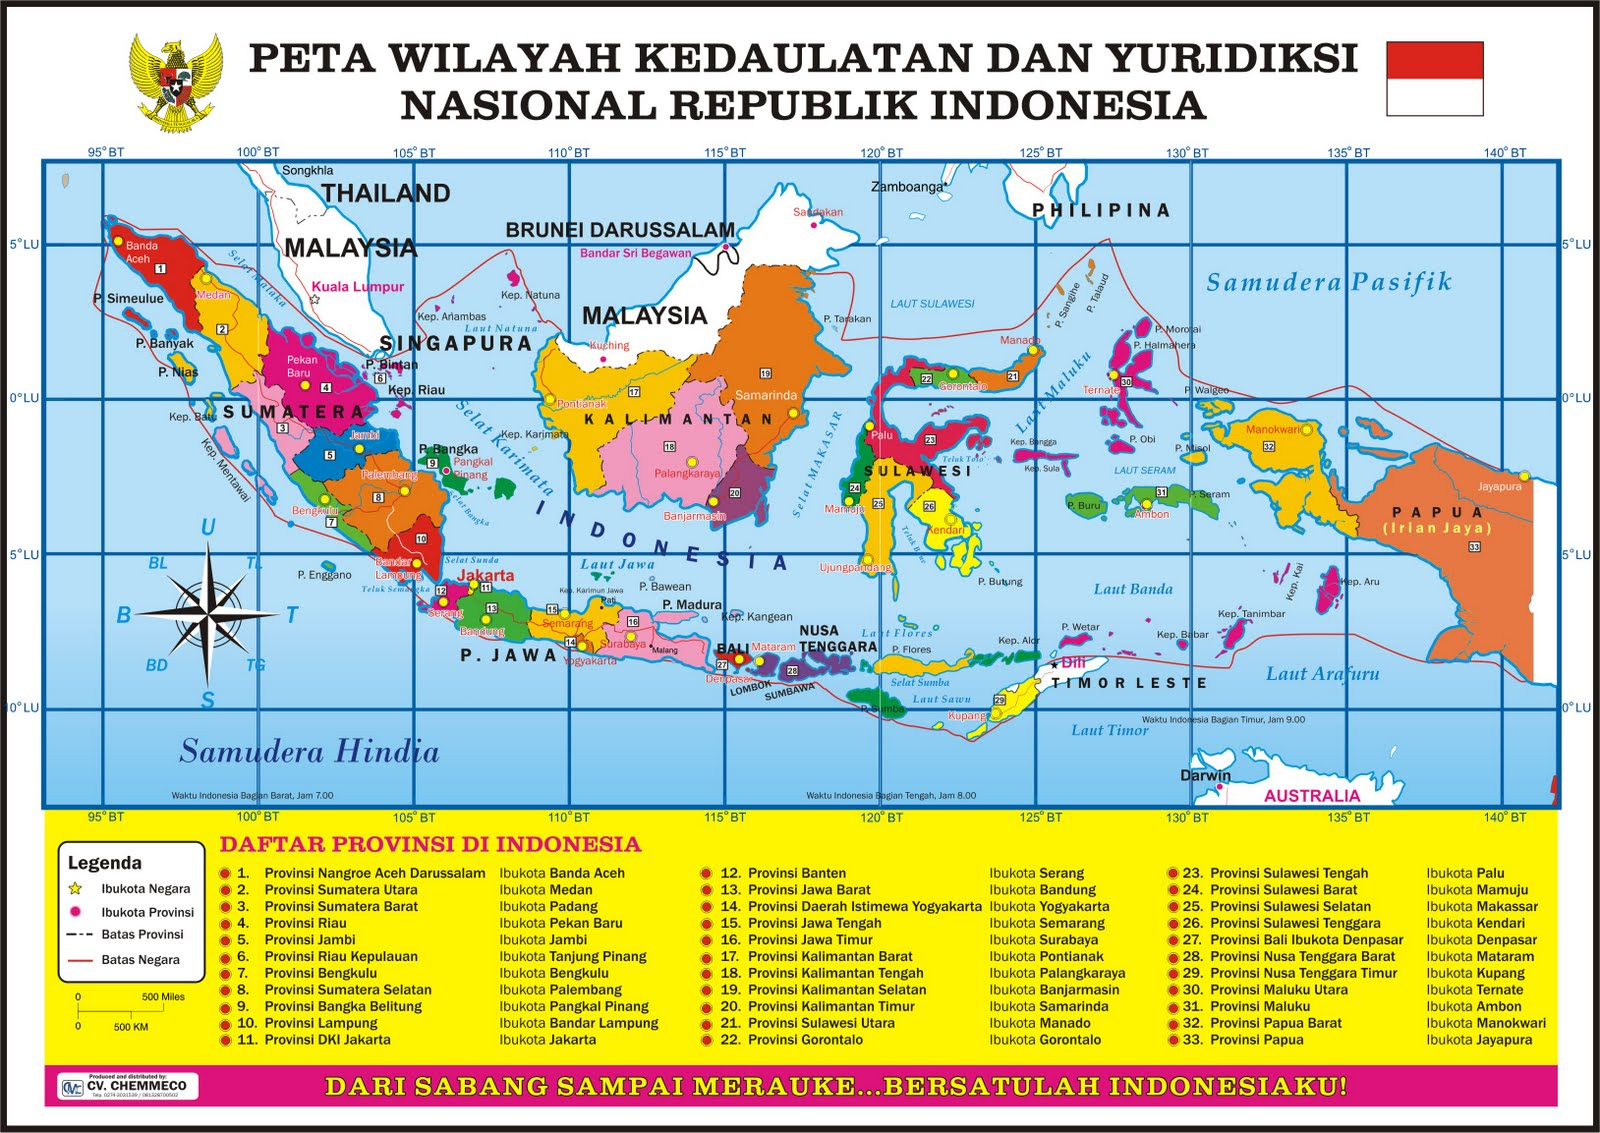 propinsi di indonesia traditional house of 33 provinces in indonesia